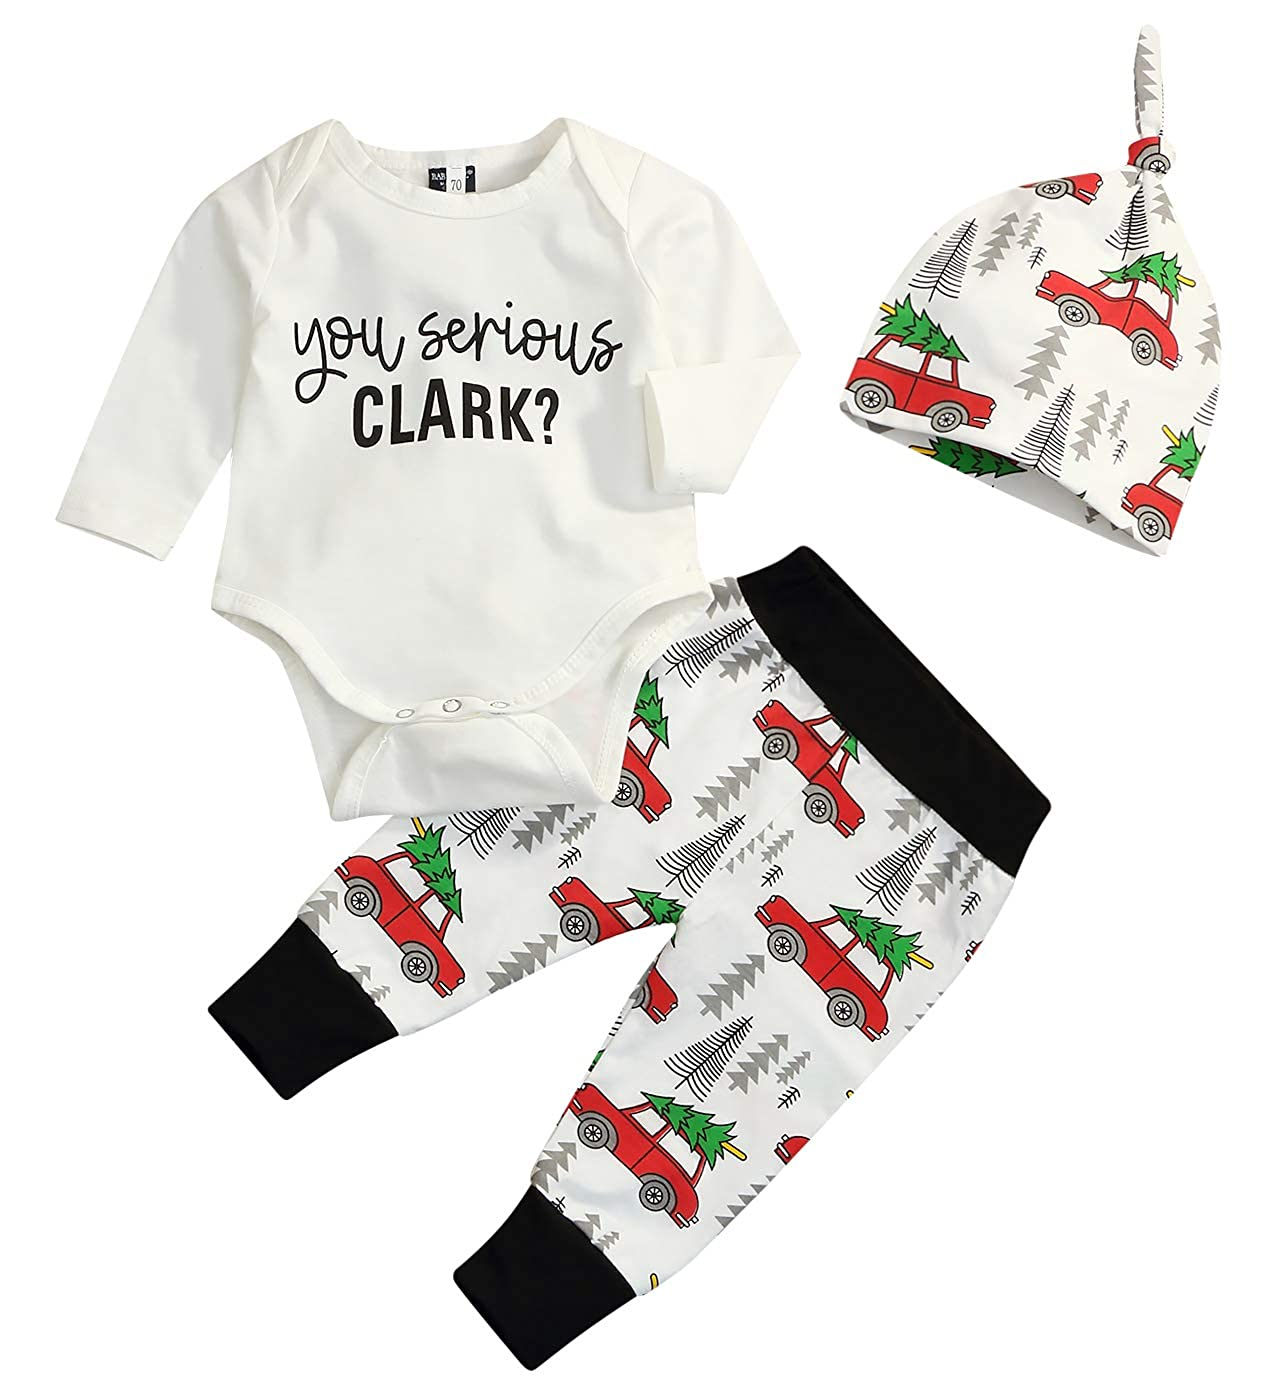 Newborn Infant Baby Christmas Car Spring Clothes Romper Tops +Long Pants Outfit 3Pcs Set